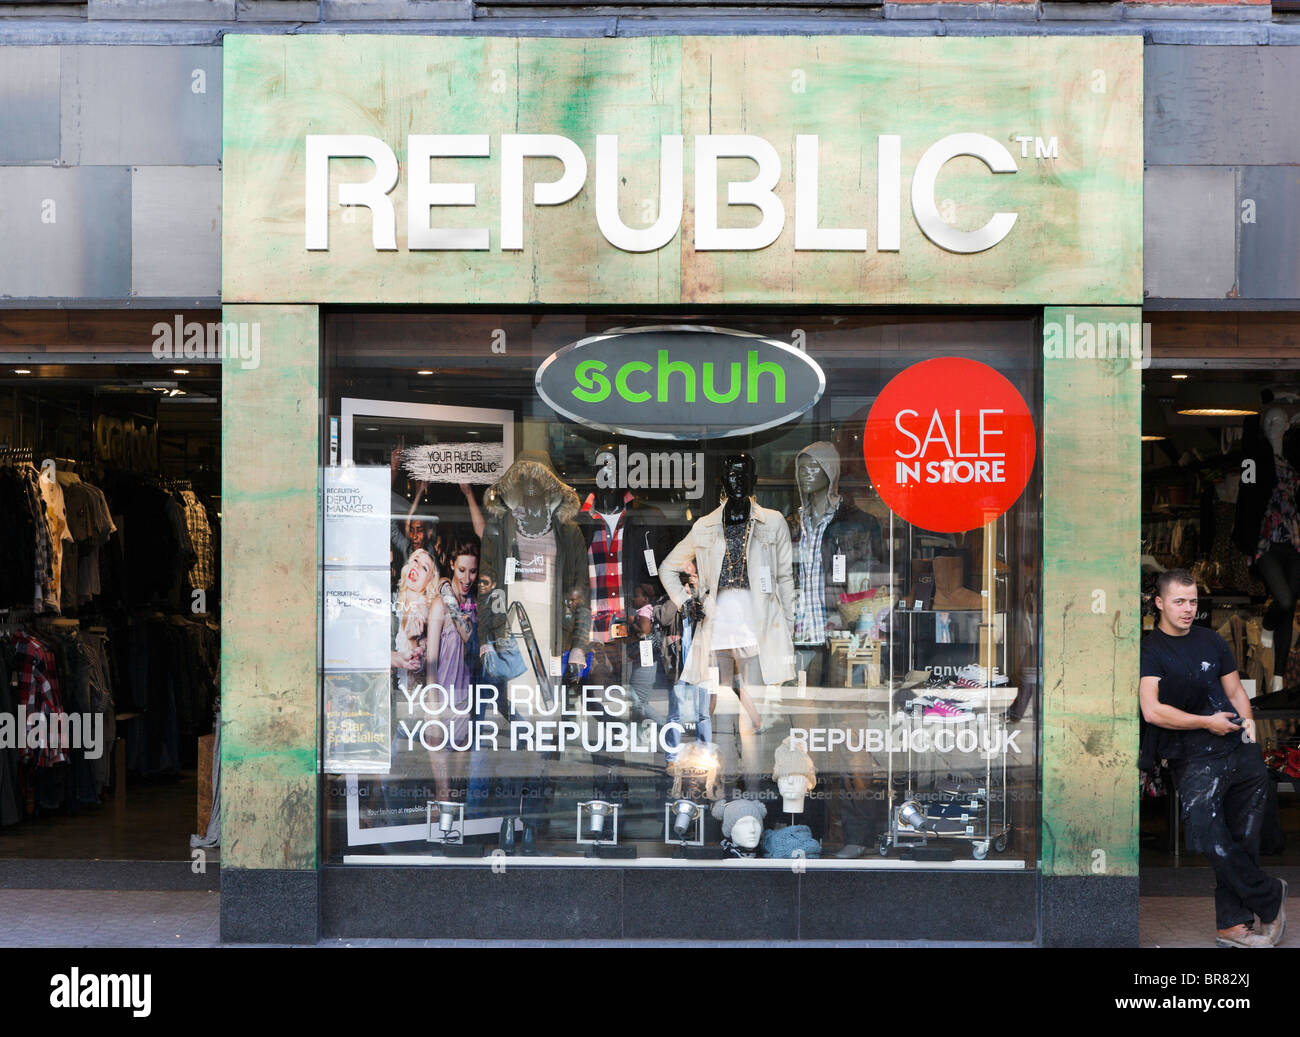 Republic store in Chester town centre, Cheshire, England, UK - Stock Image